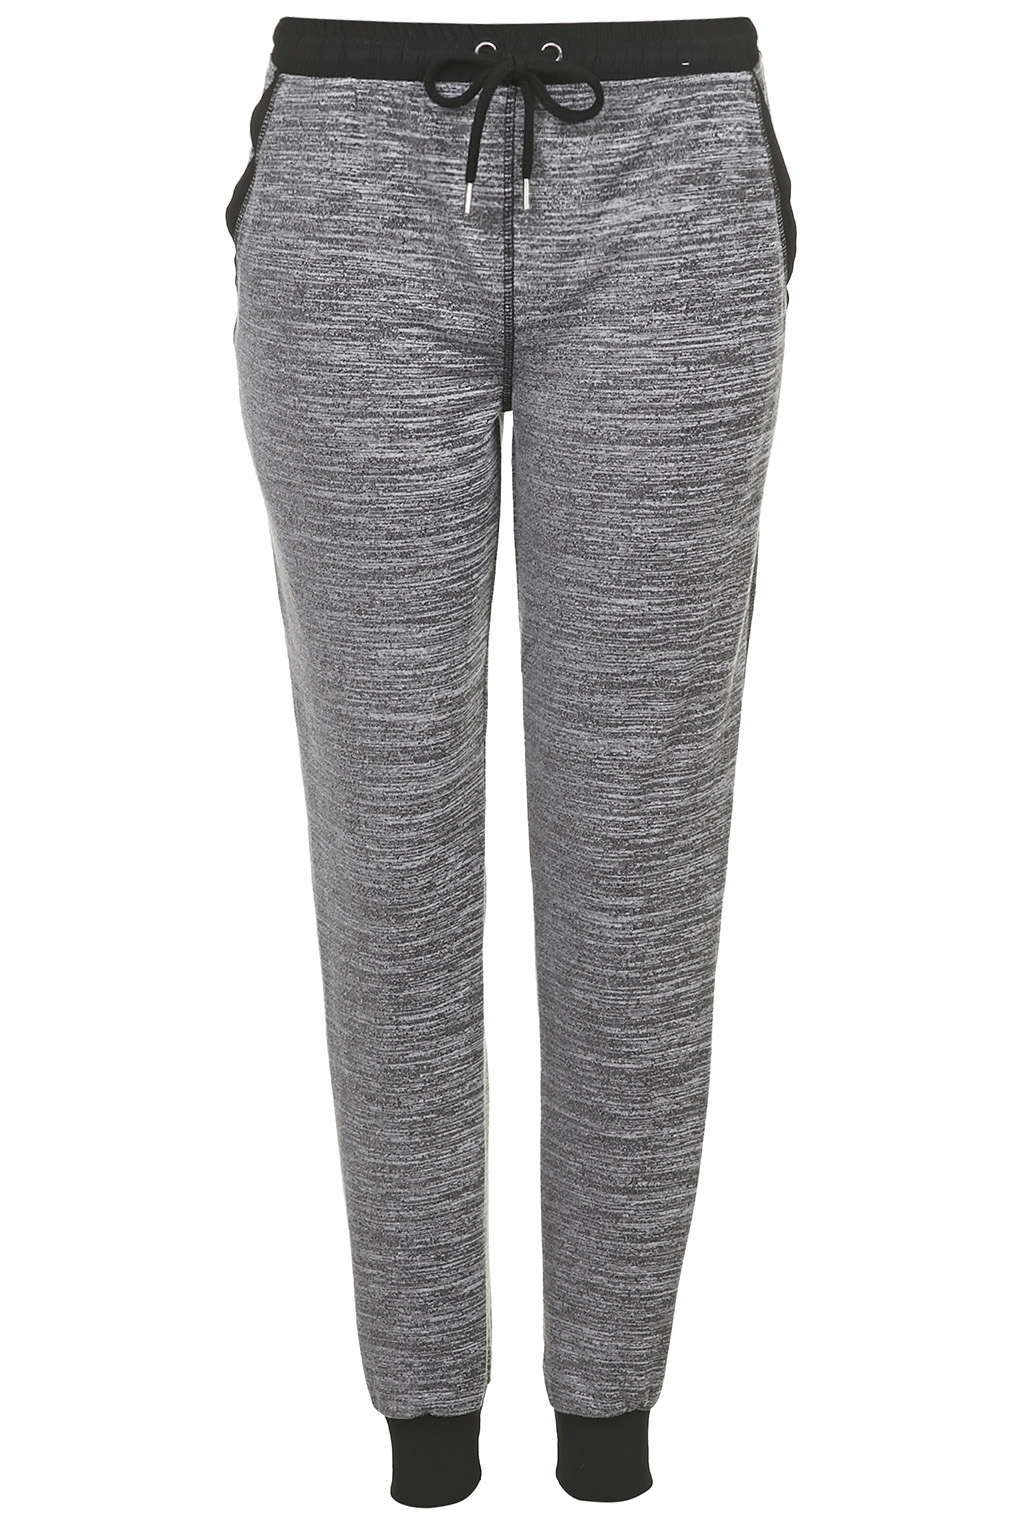 Space Dye Loungewear Joggers - Trousers & Leggings - Clothing - Topshop